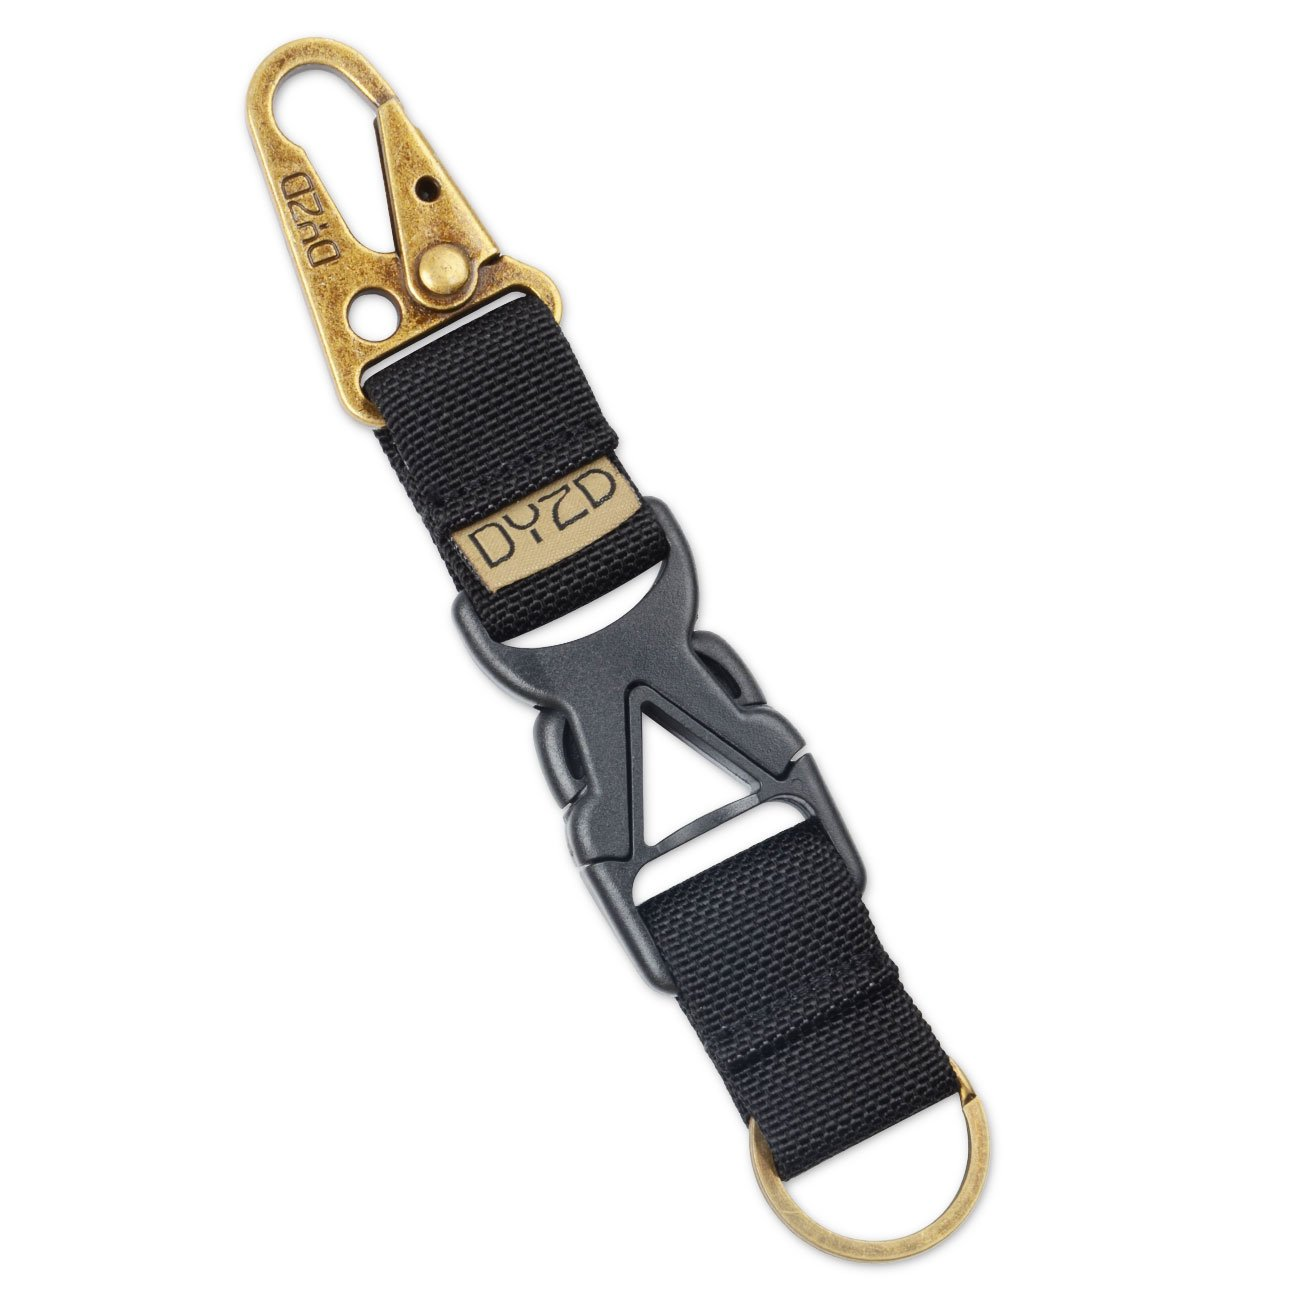 DYZD Tactical Gear Keychain Clip 100/% Nylon Belt Key Chain Tactical Key Holder Quick Release Buckle Key Ring Outdoor Keychain ZHAOWEI